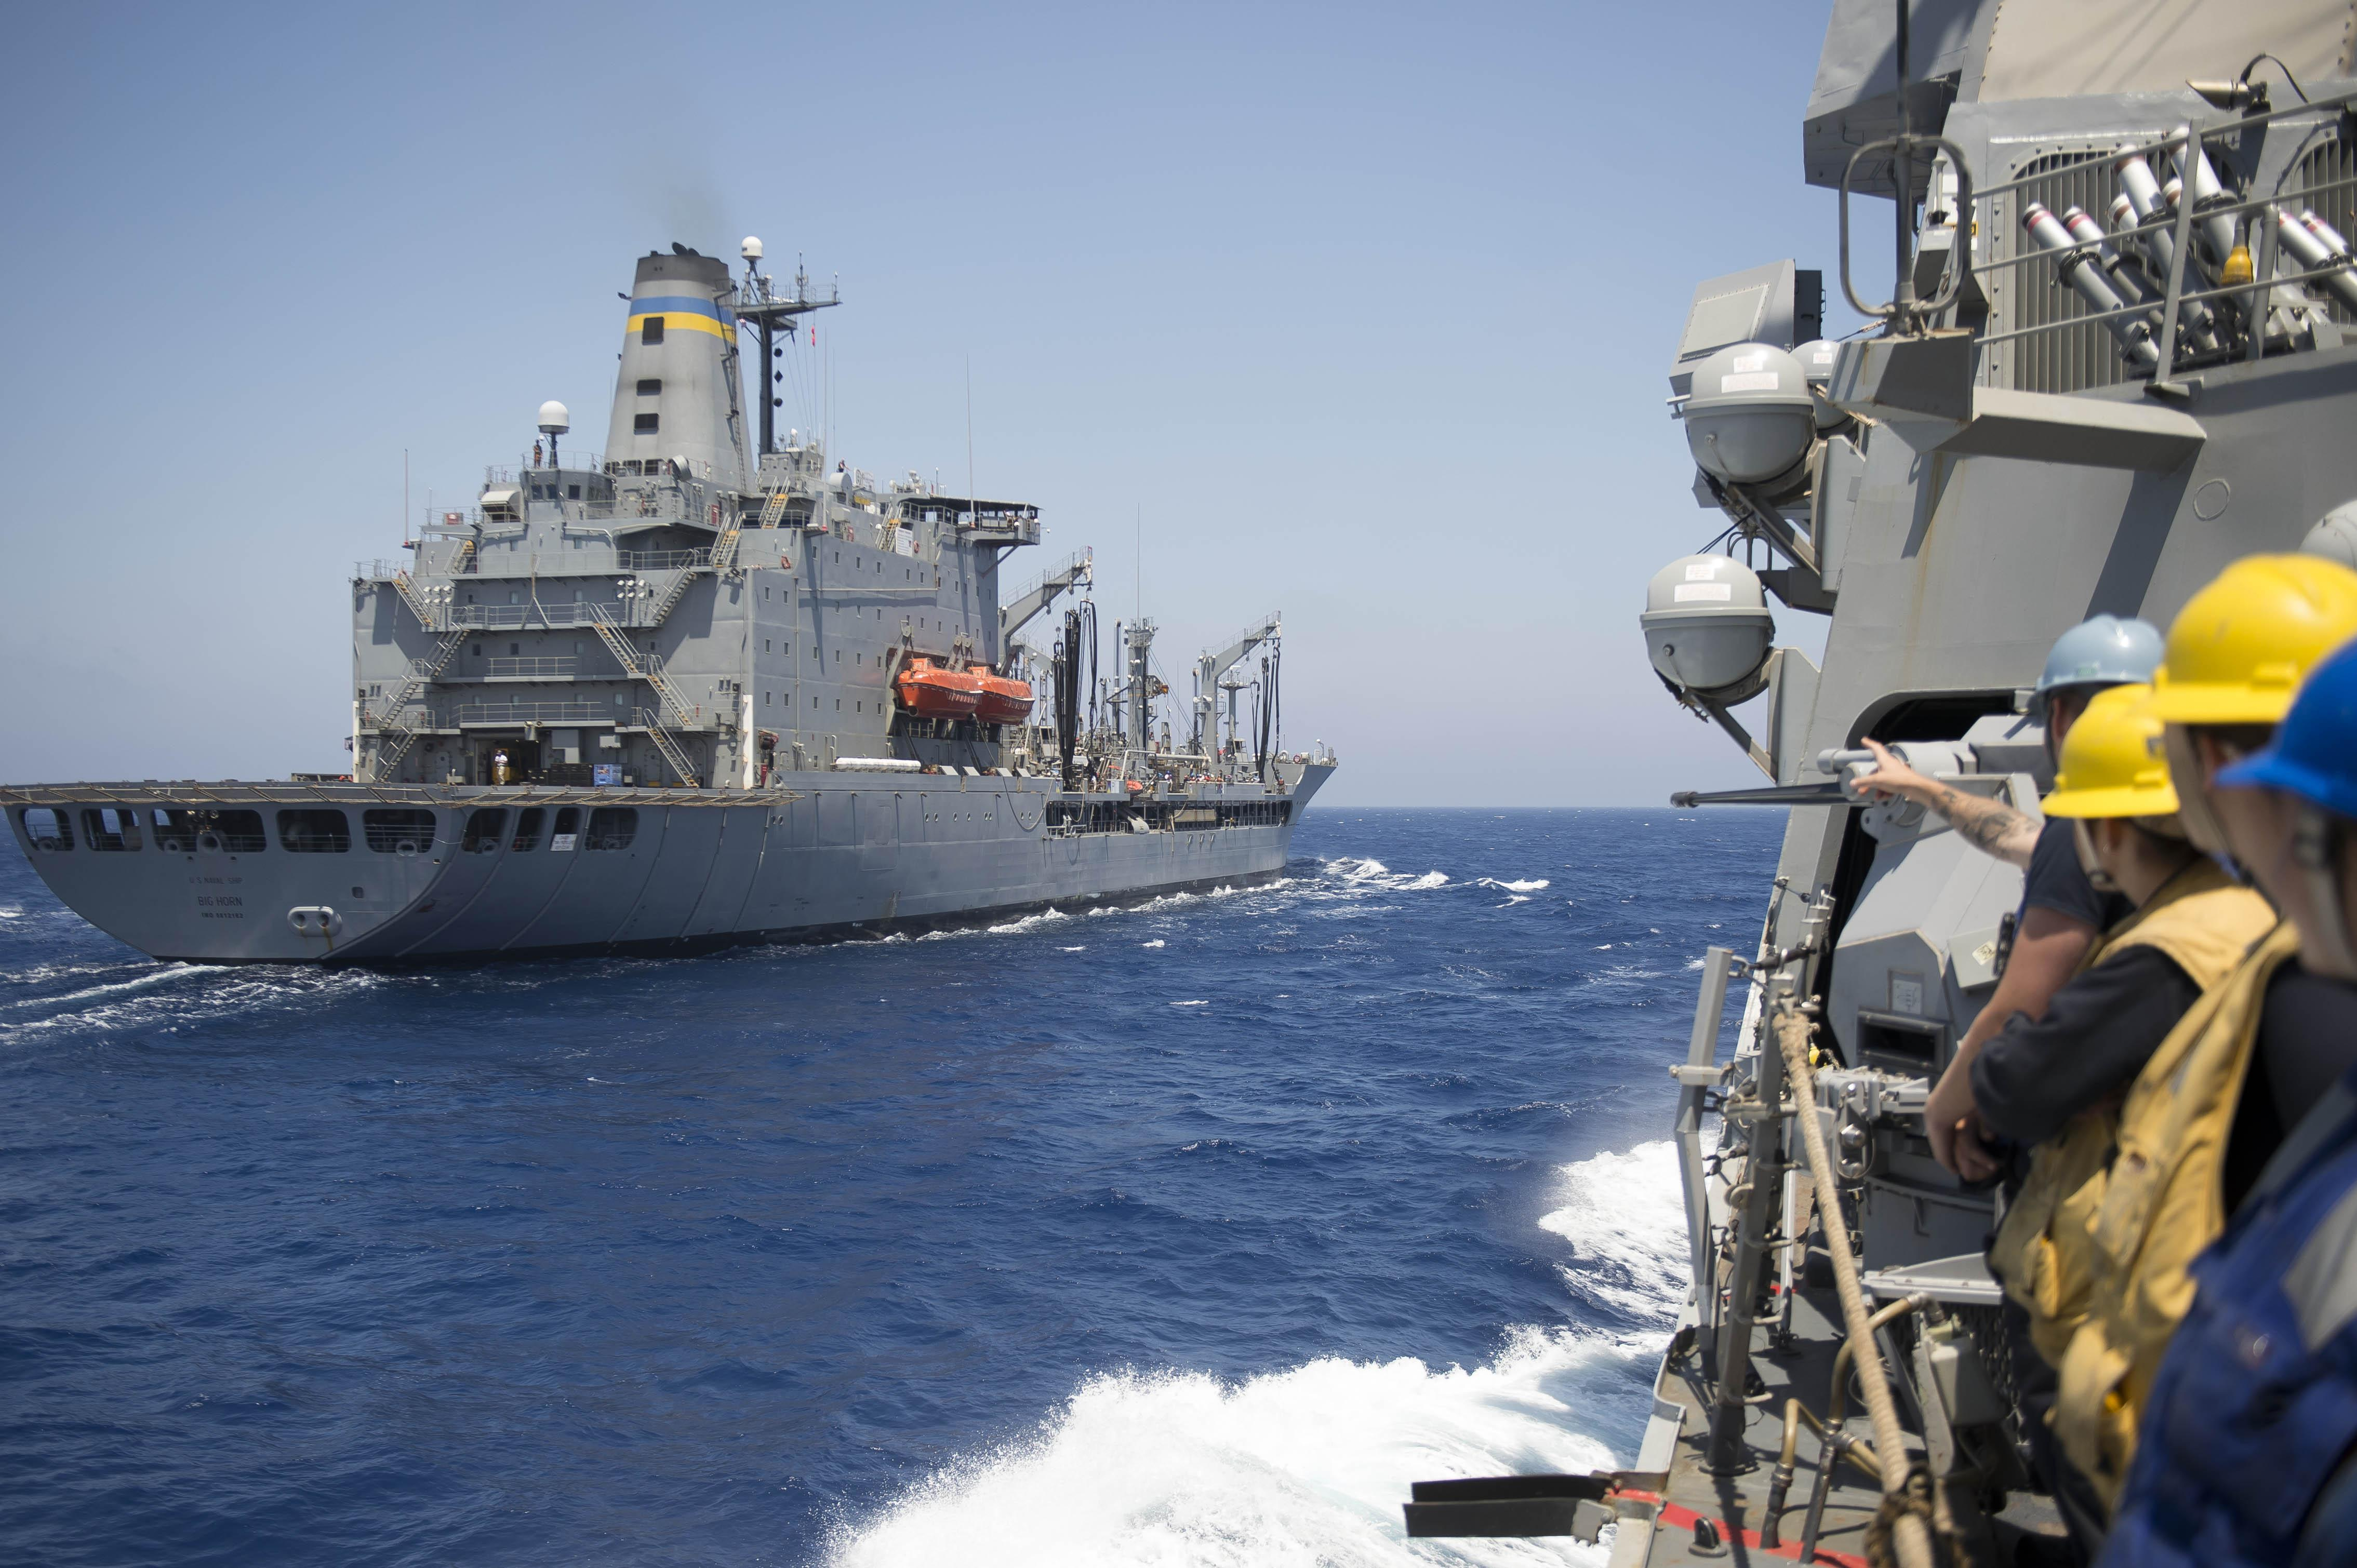 Military Sealift Command - support ships - auxiliary vessels - Page 2 34580256971_10577de229_o